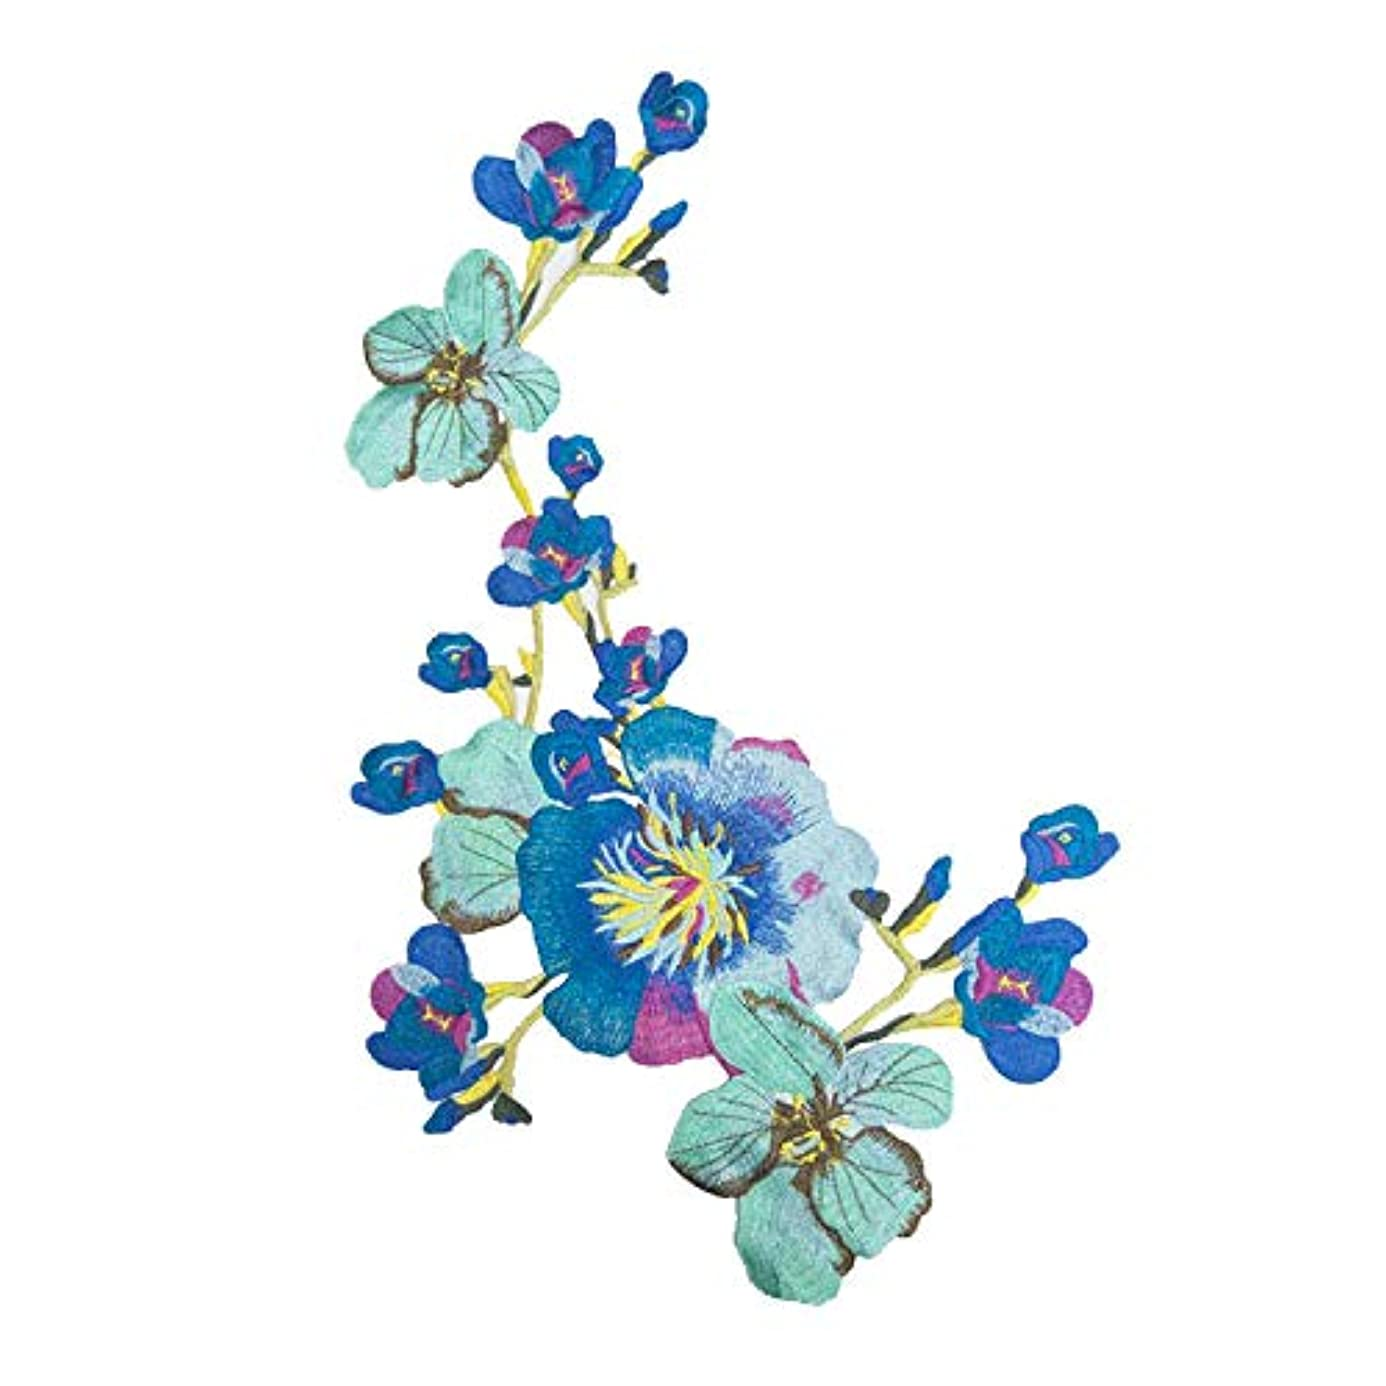 1pcs Blue Flower Embroideried Patch Fabric National Trend Applique Sew Clothes Accessories xbn0261954